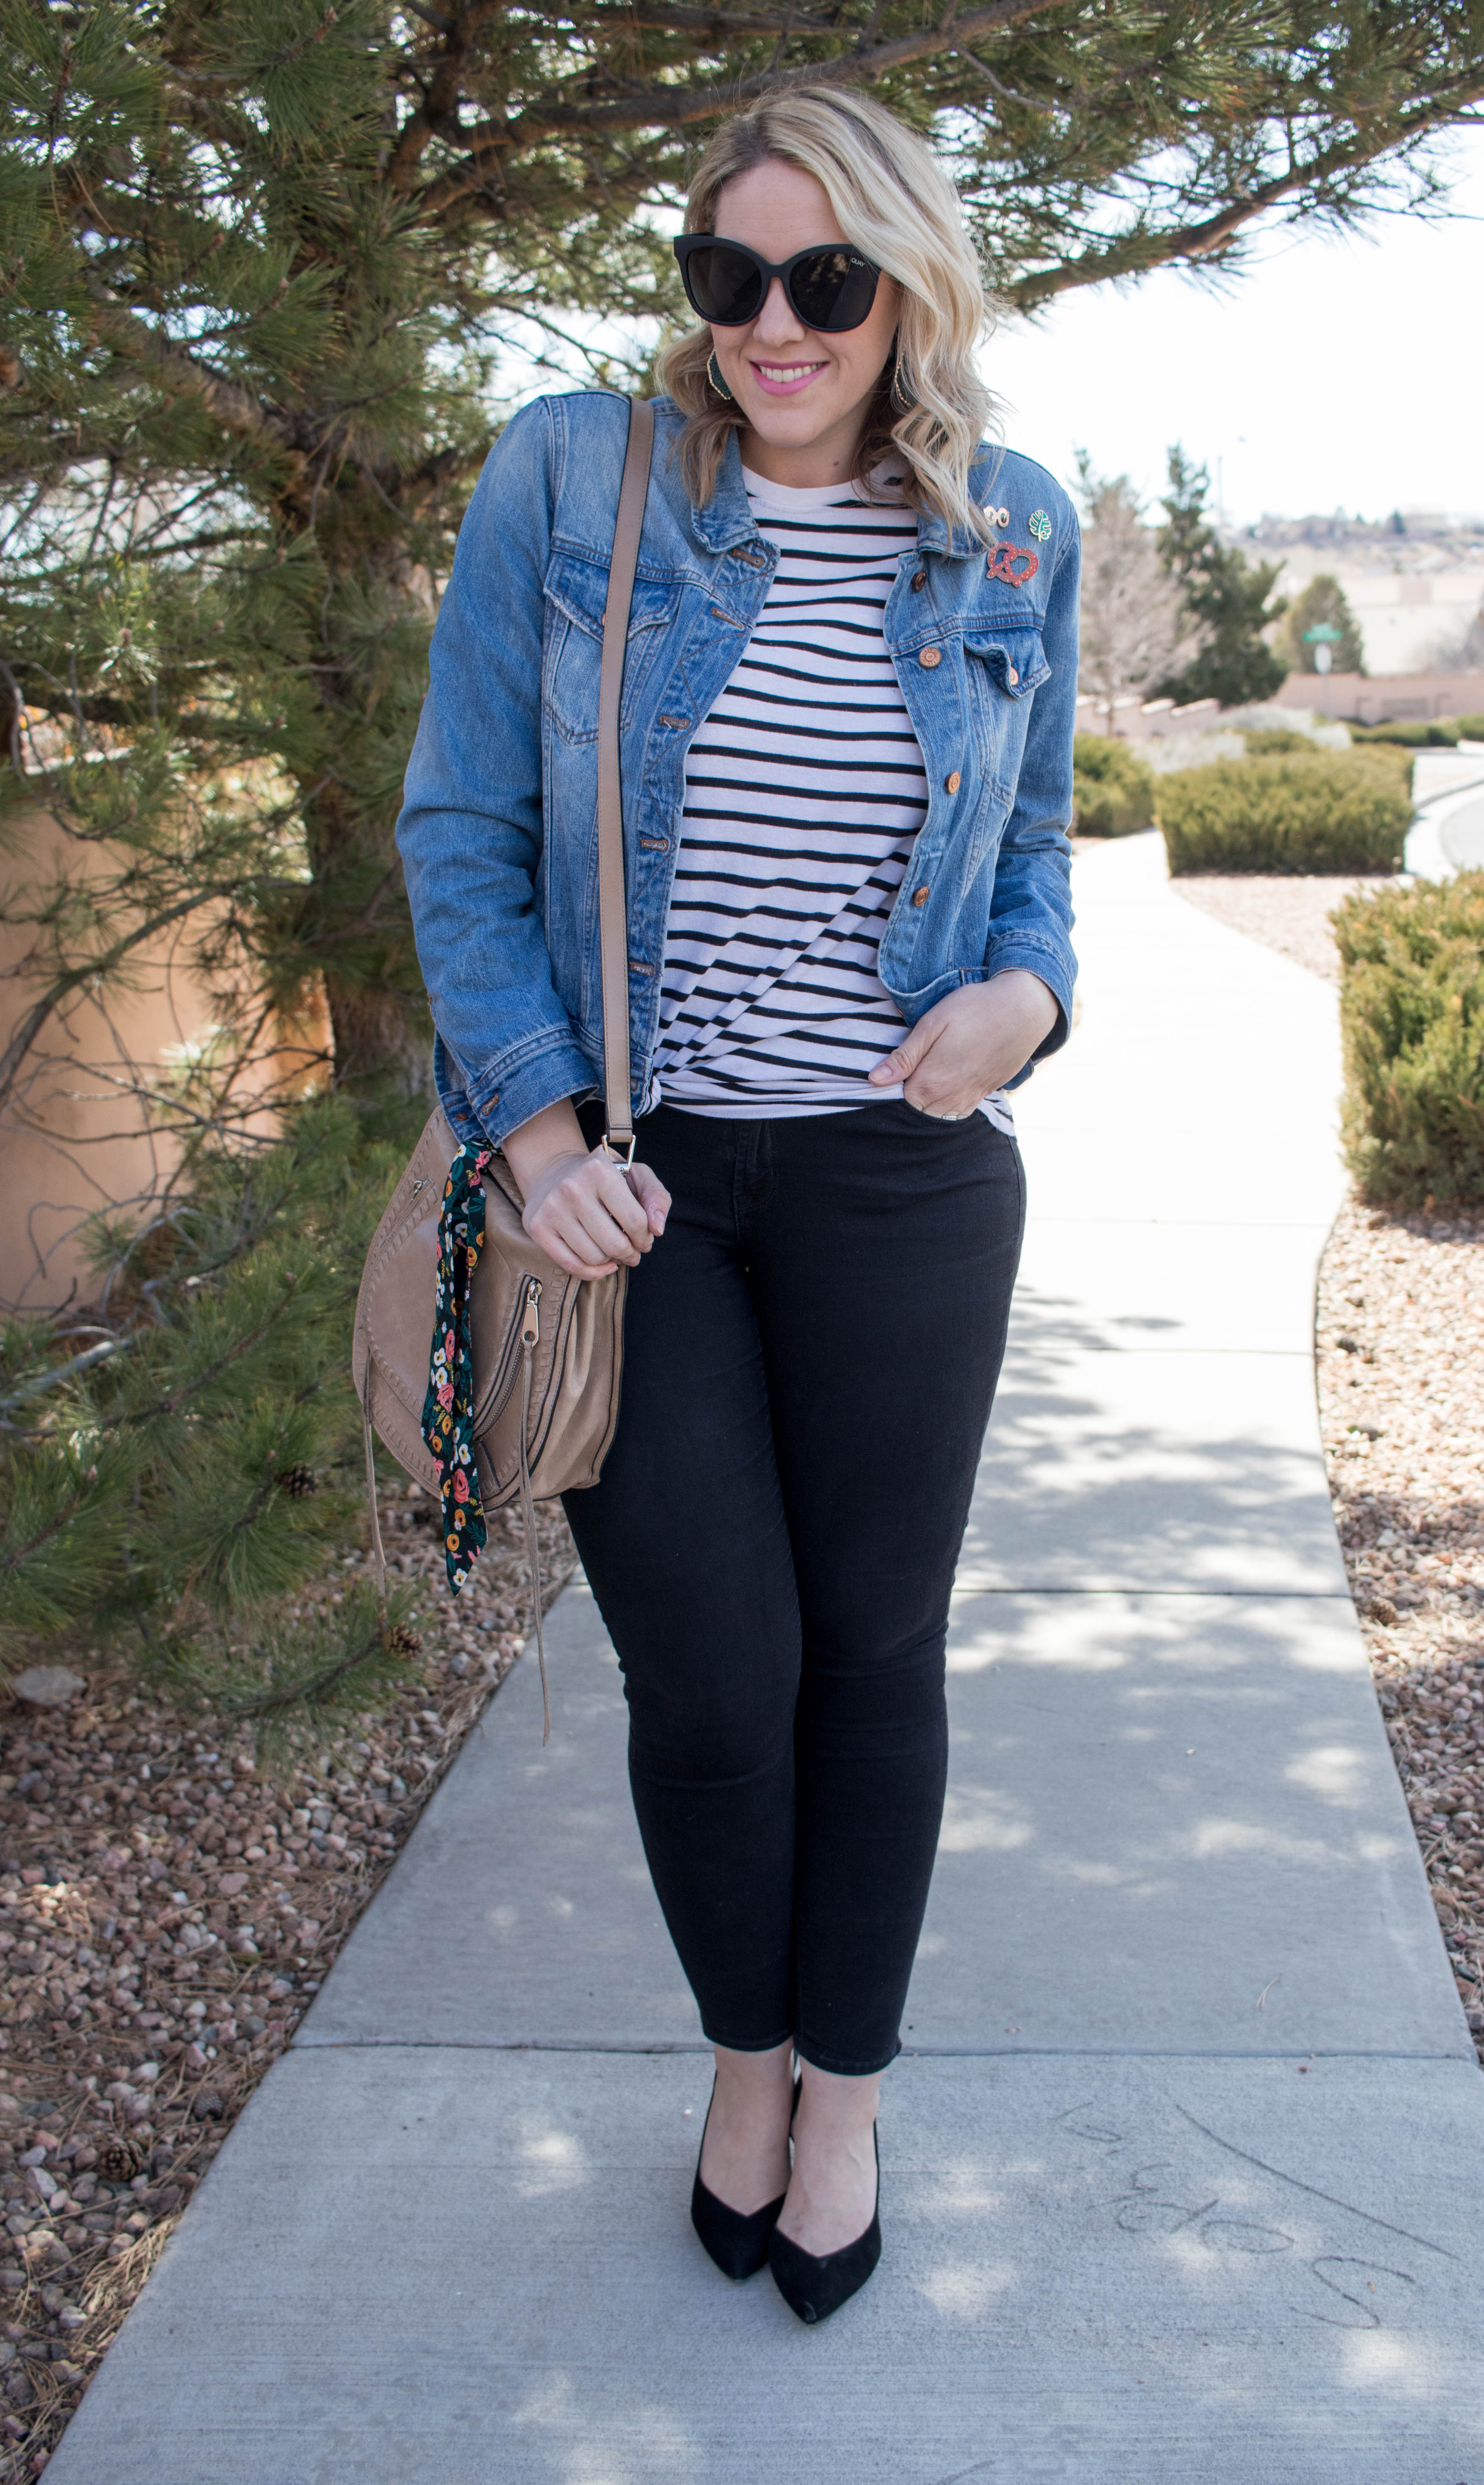 spring to winter transitional style #denimjacket #casualstyle #streetstyle